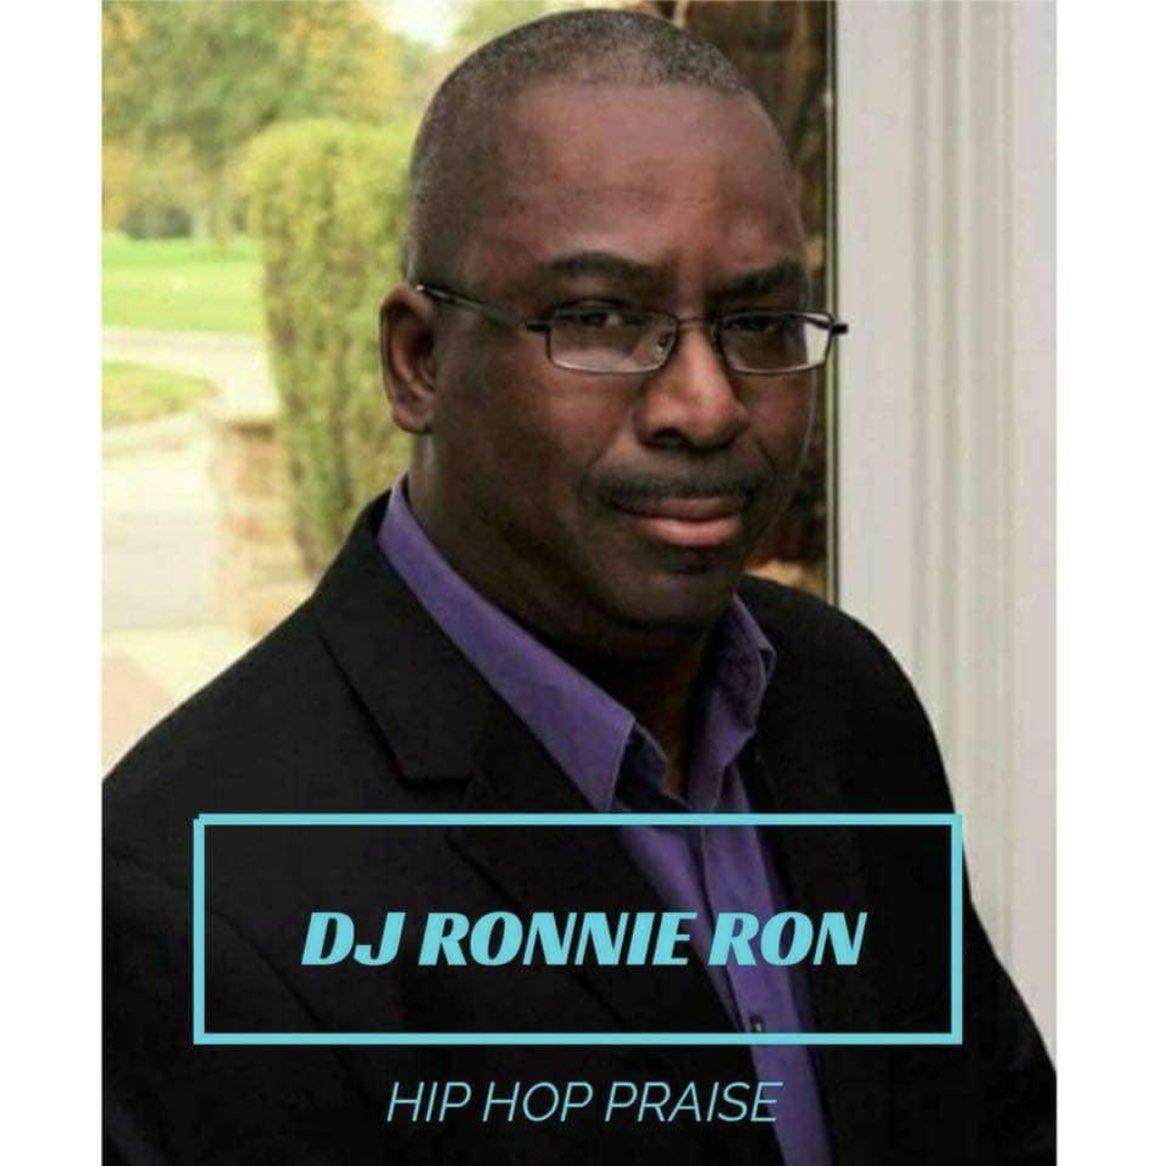 DJ Ronnie Ron Clubhouse